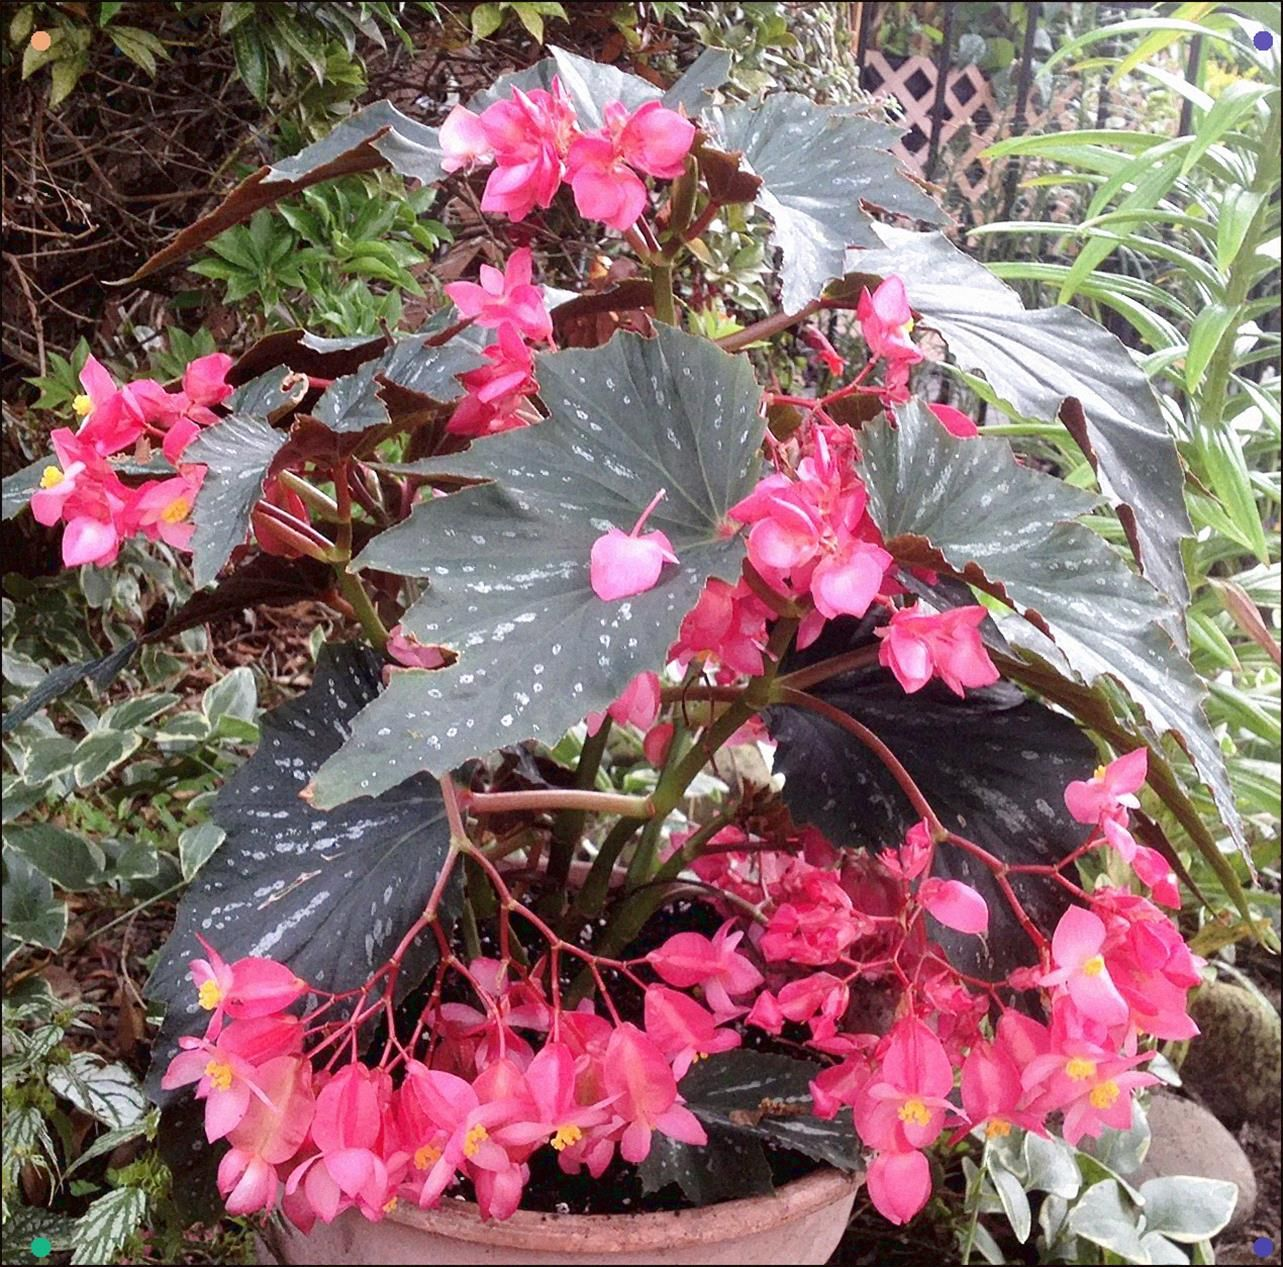 Angel Wing Begonia Beginners Guide To The Angel Wing Begonia Angel Wing Begonia Is A Long Established Plant That Is Coming Back In Plants Begonia Bonsai Flower